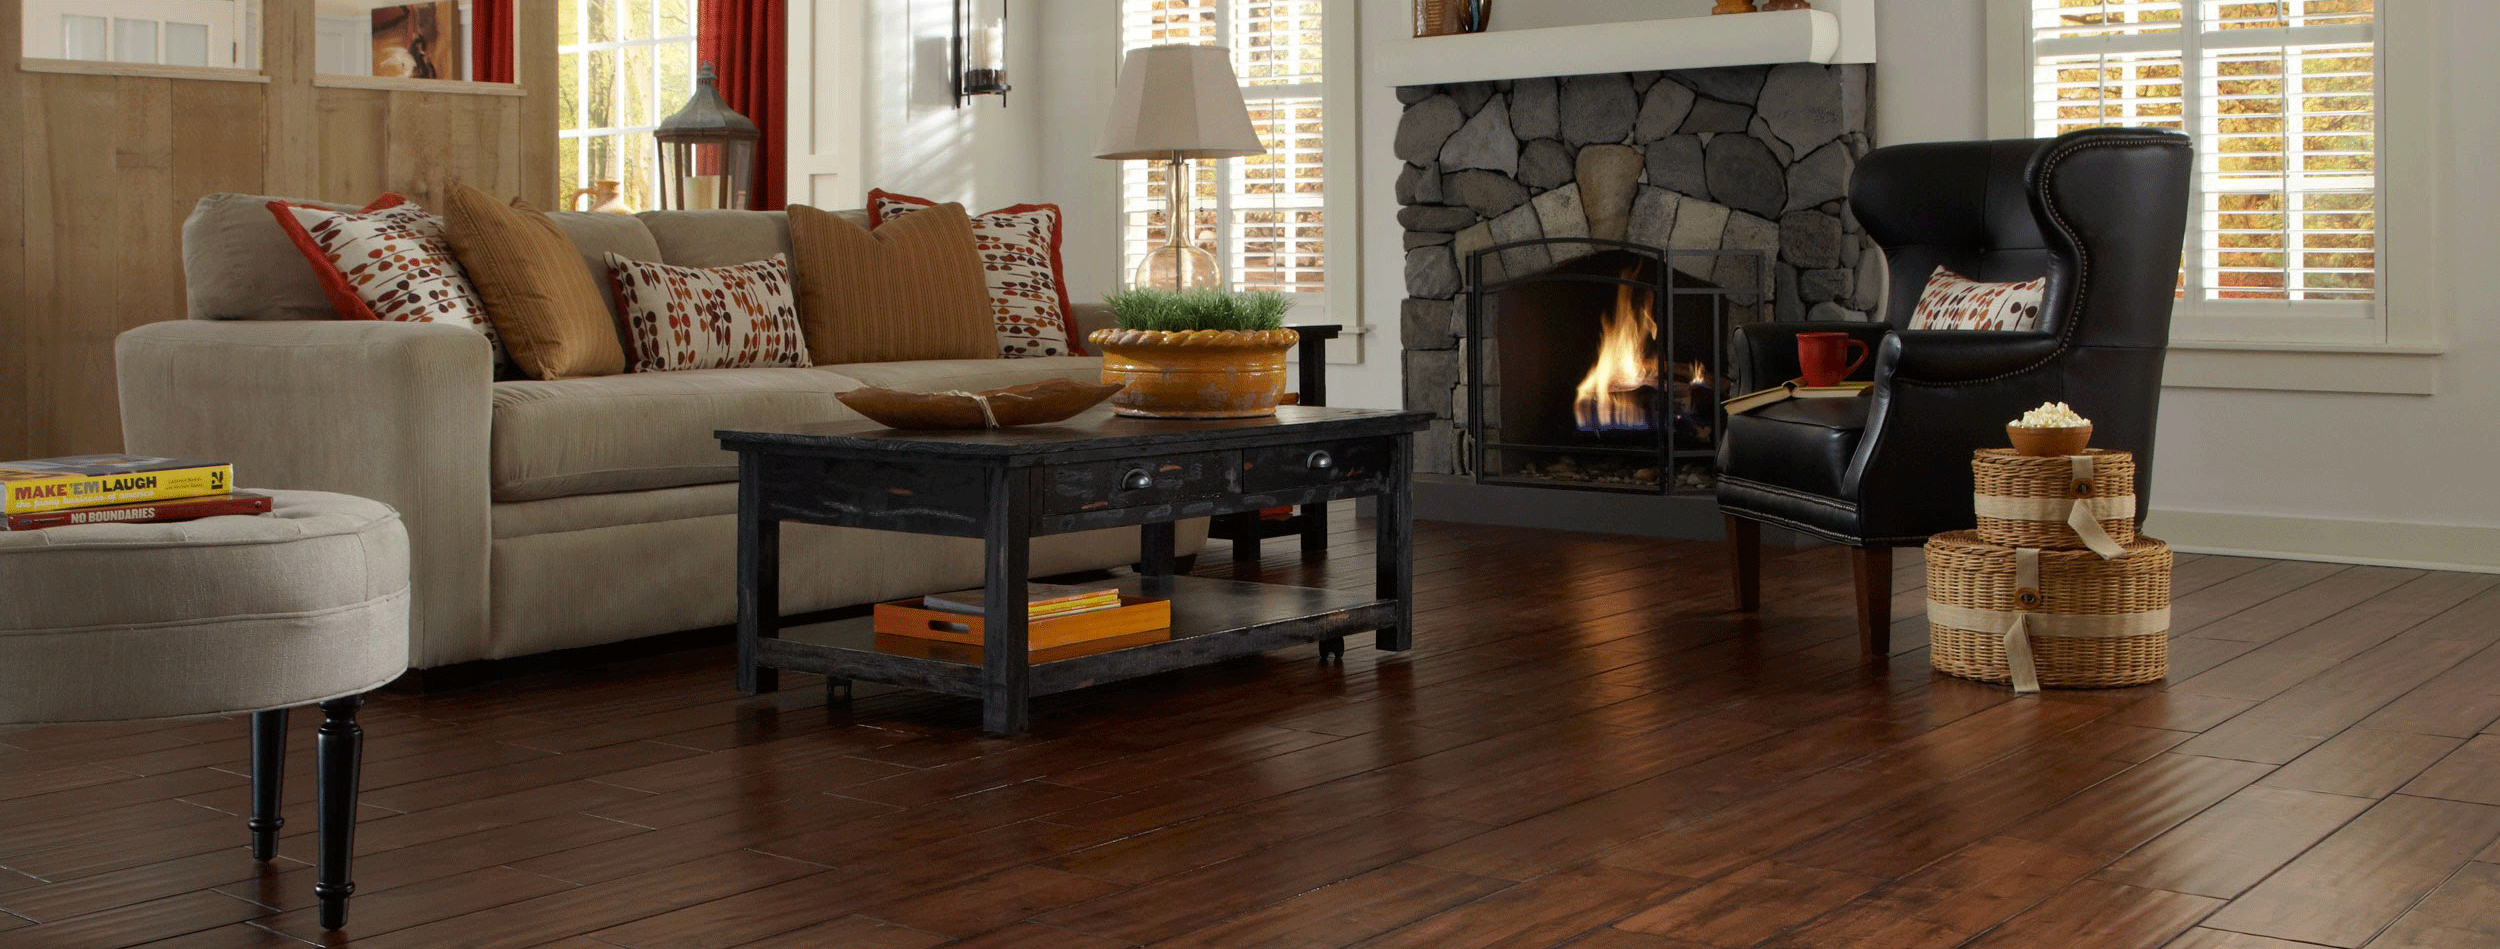 hardwood-floor-header